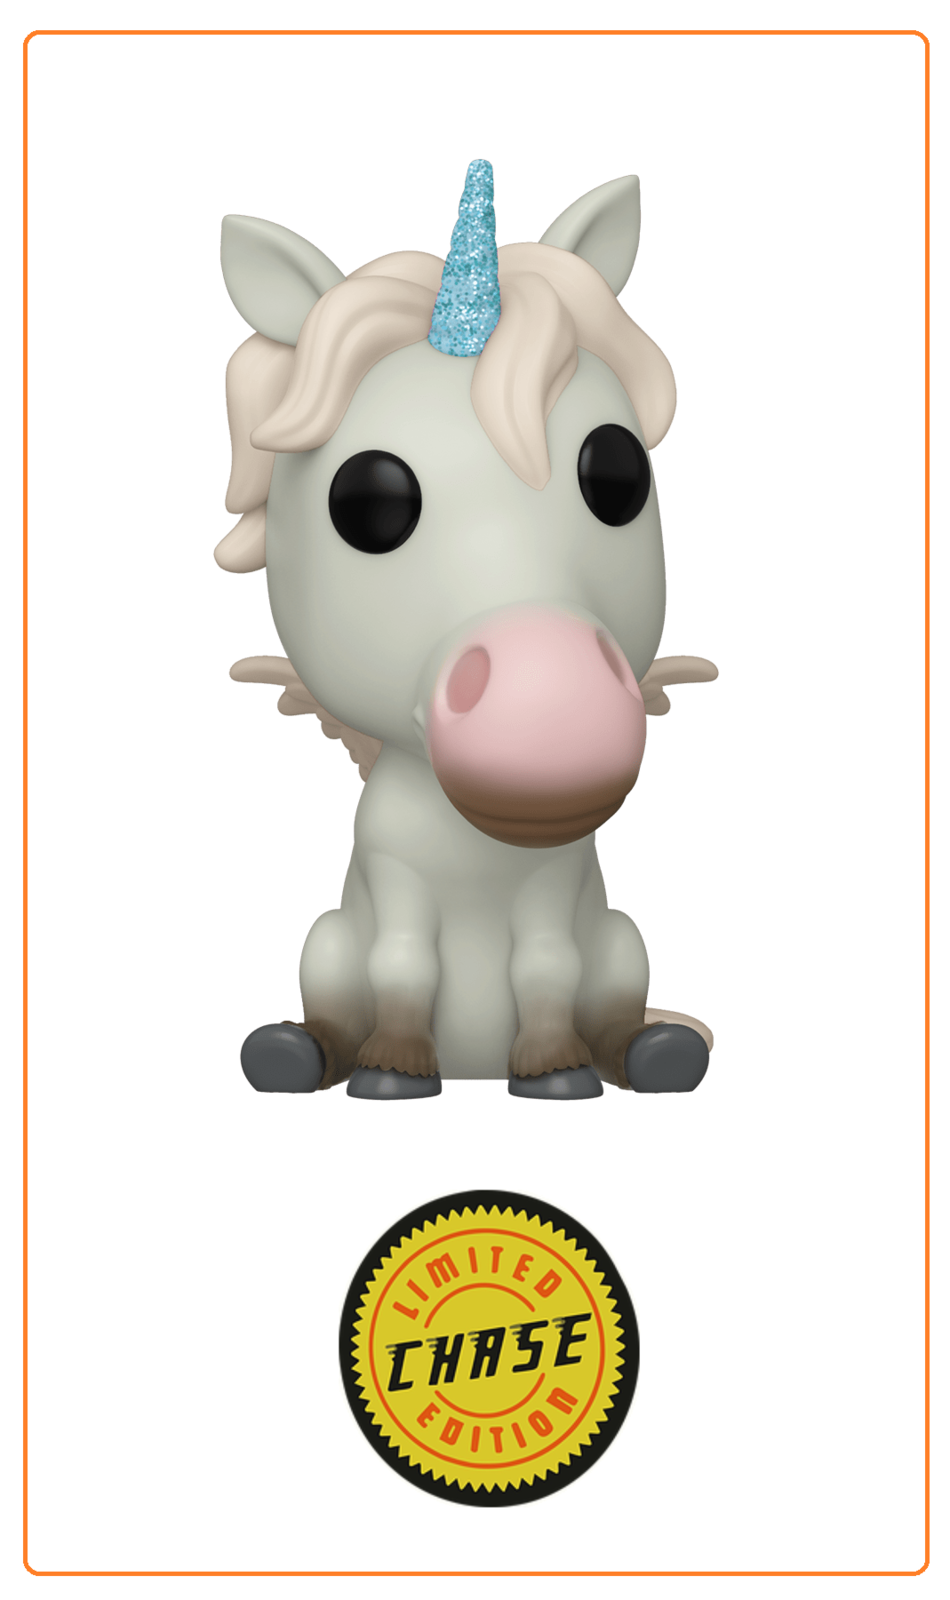 Onward: Unicorn - Pop! Vinyl Figure (with a chance for a Chase version!) image